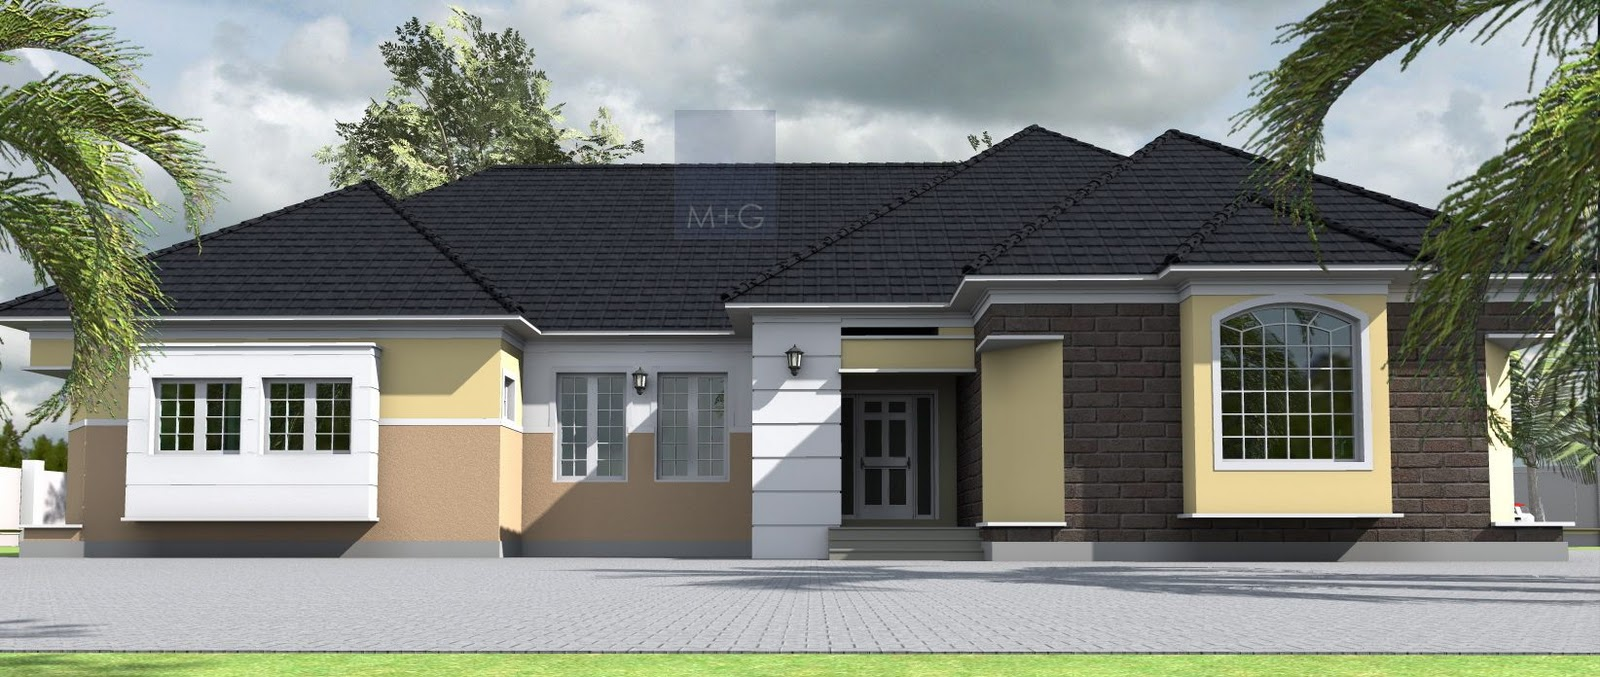 Modern Four Bedroom House Plans Drawings And Plans Of Four Bedroom Bungalow